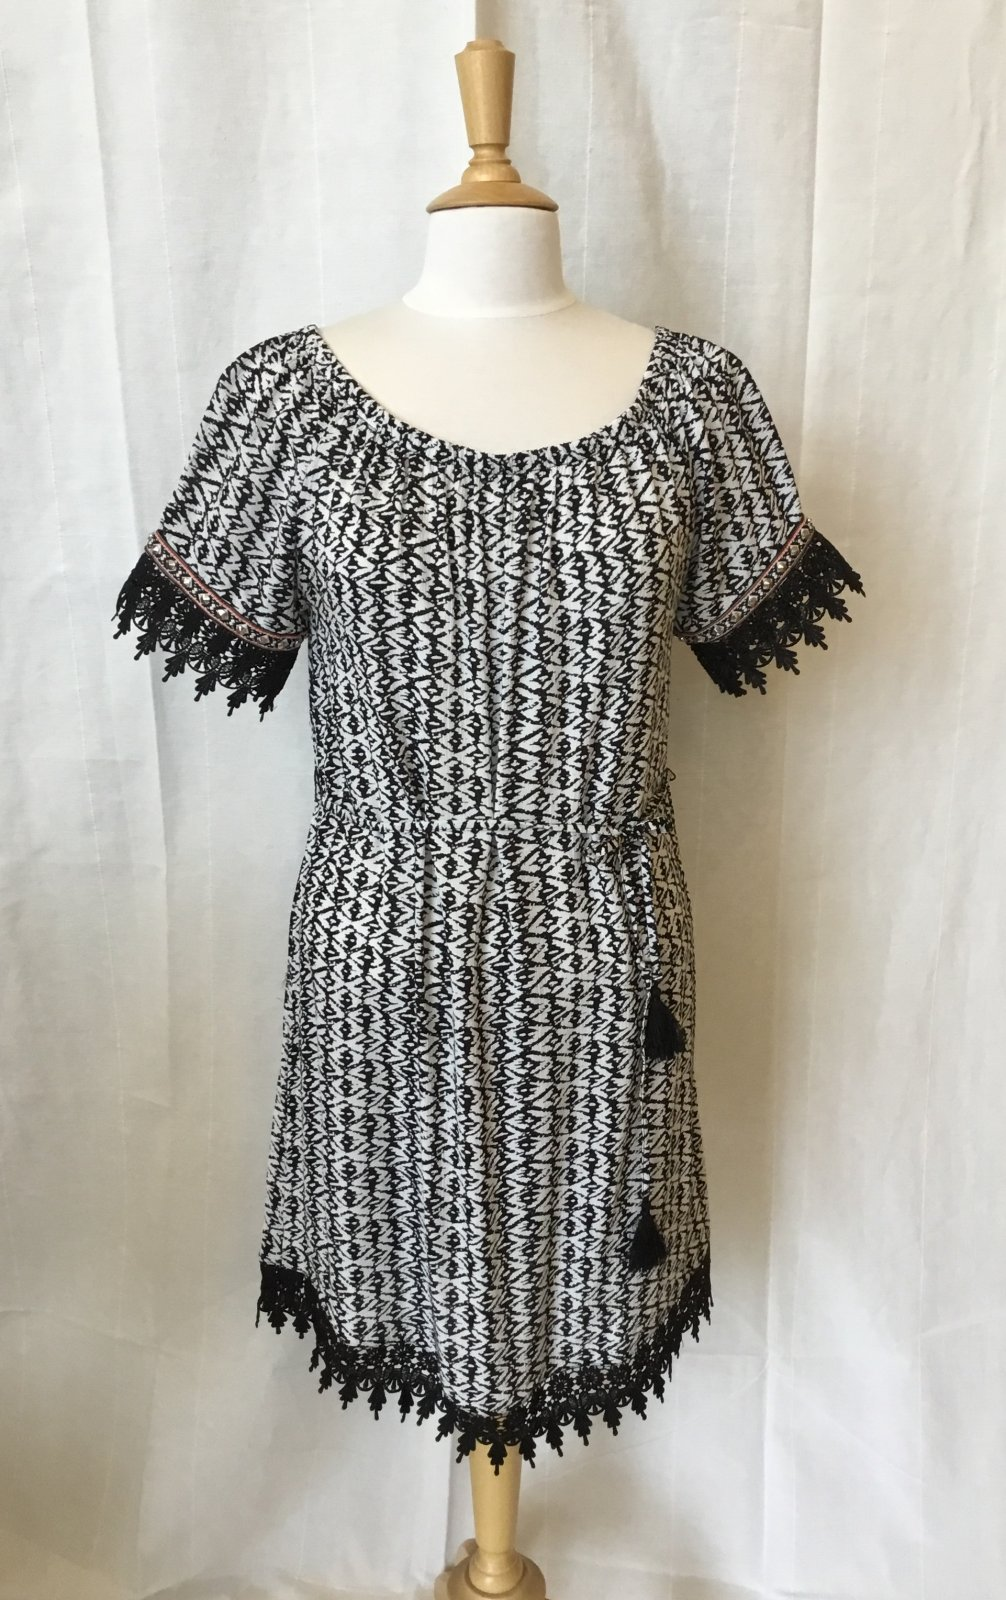 Esqualo Print Dress w/lace